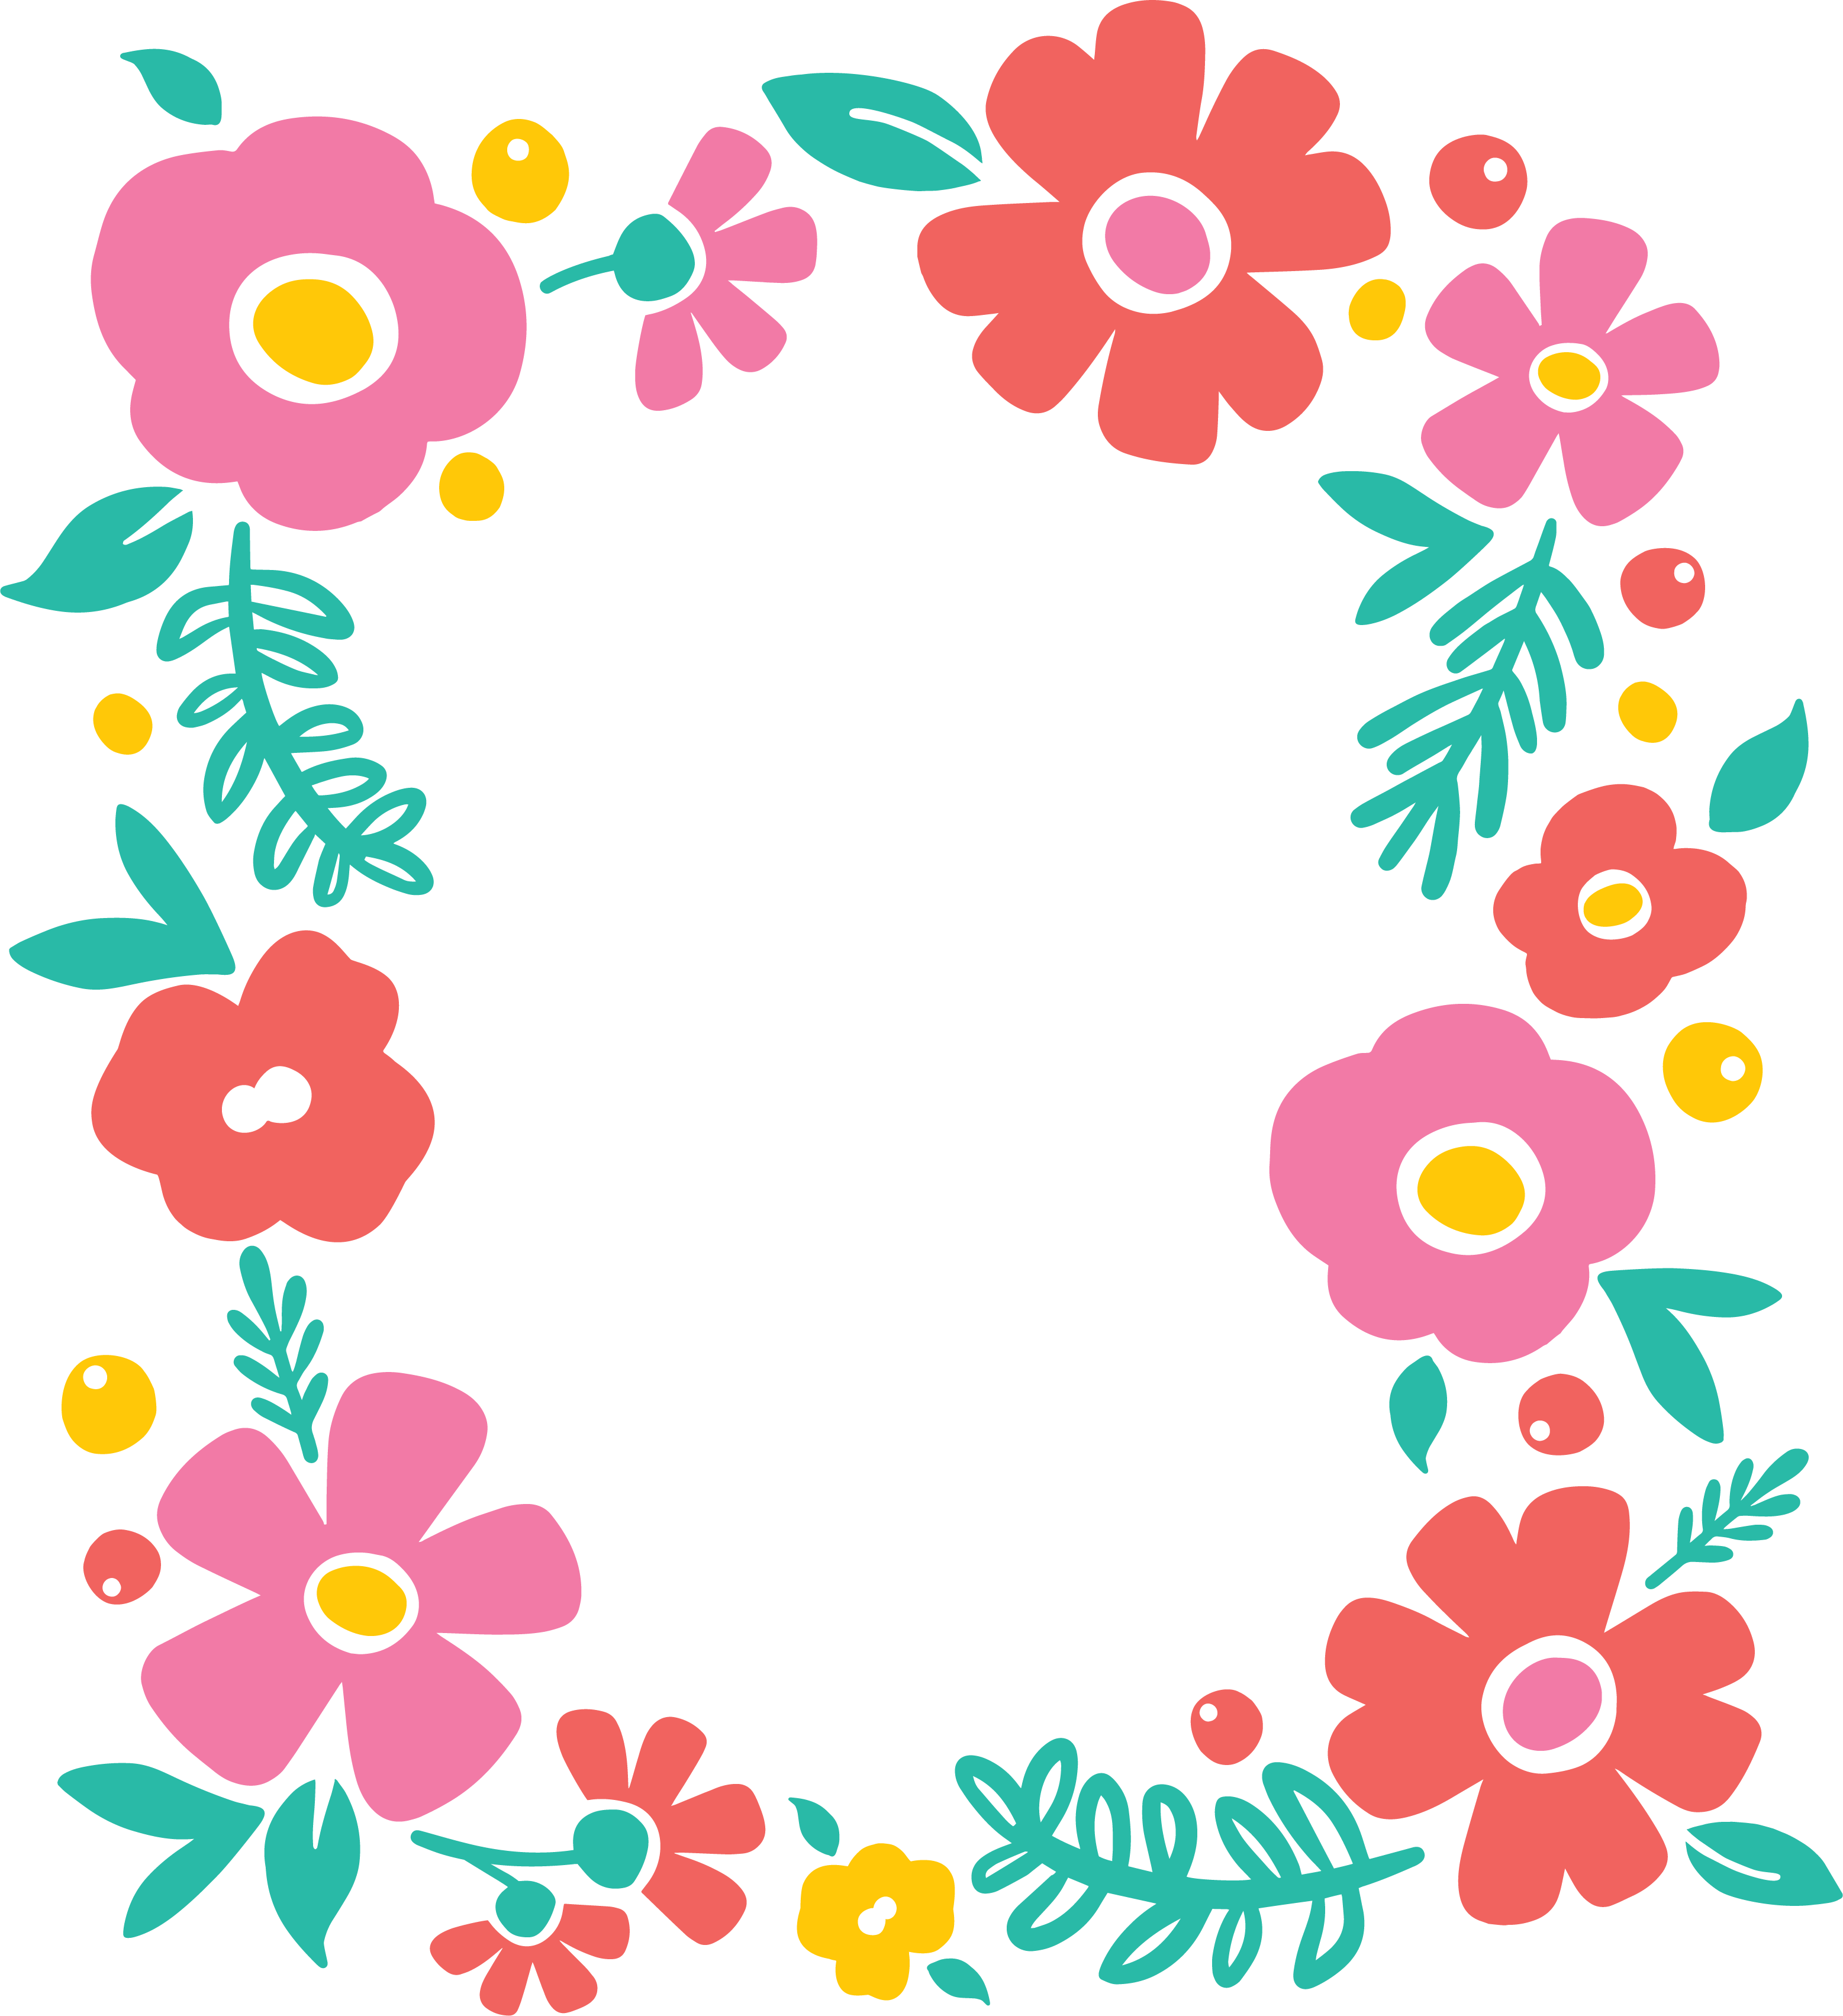 Free svg flower cut file for silhouette or cricut persia lou floral frame png izmirmasajfo